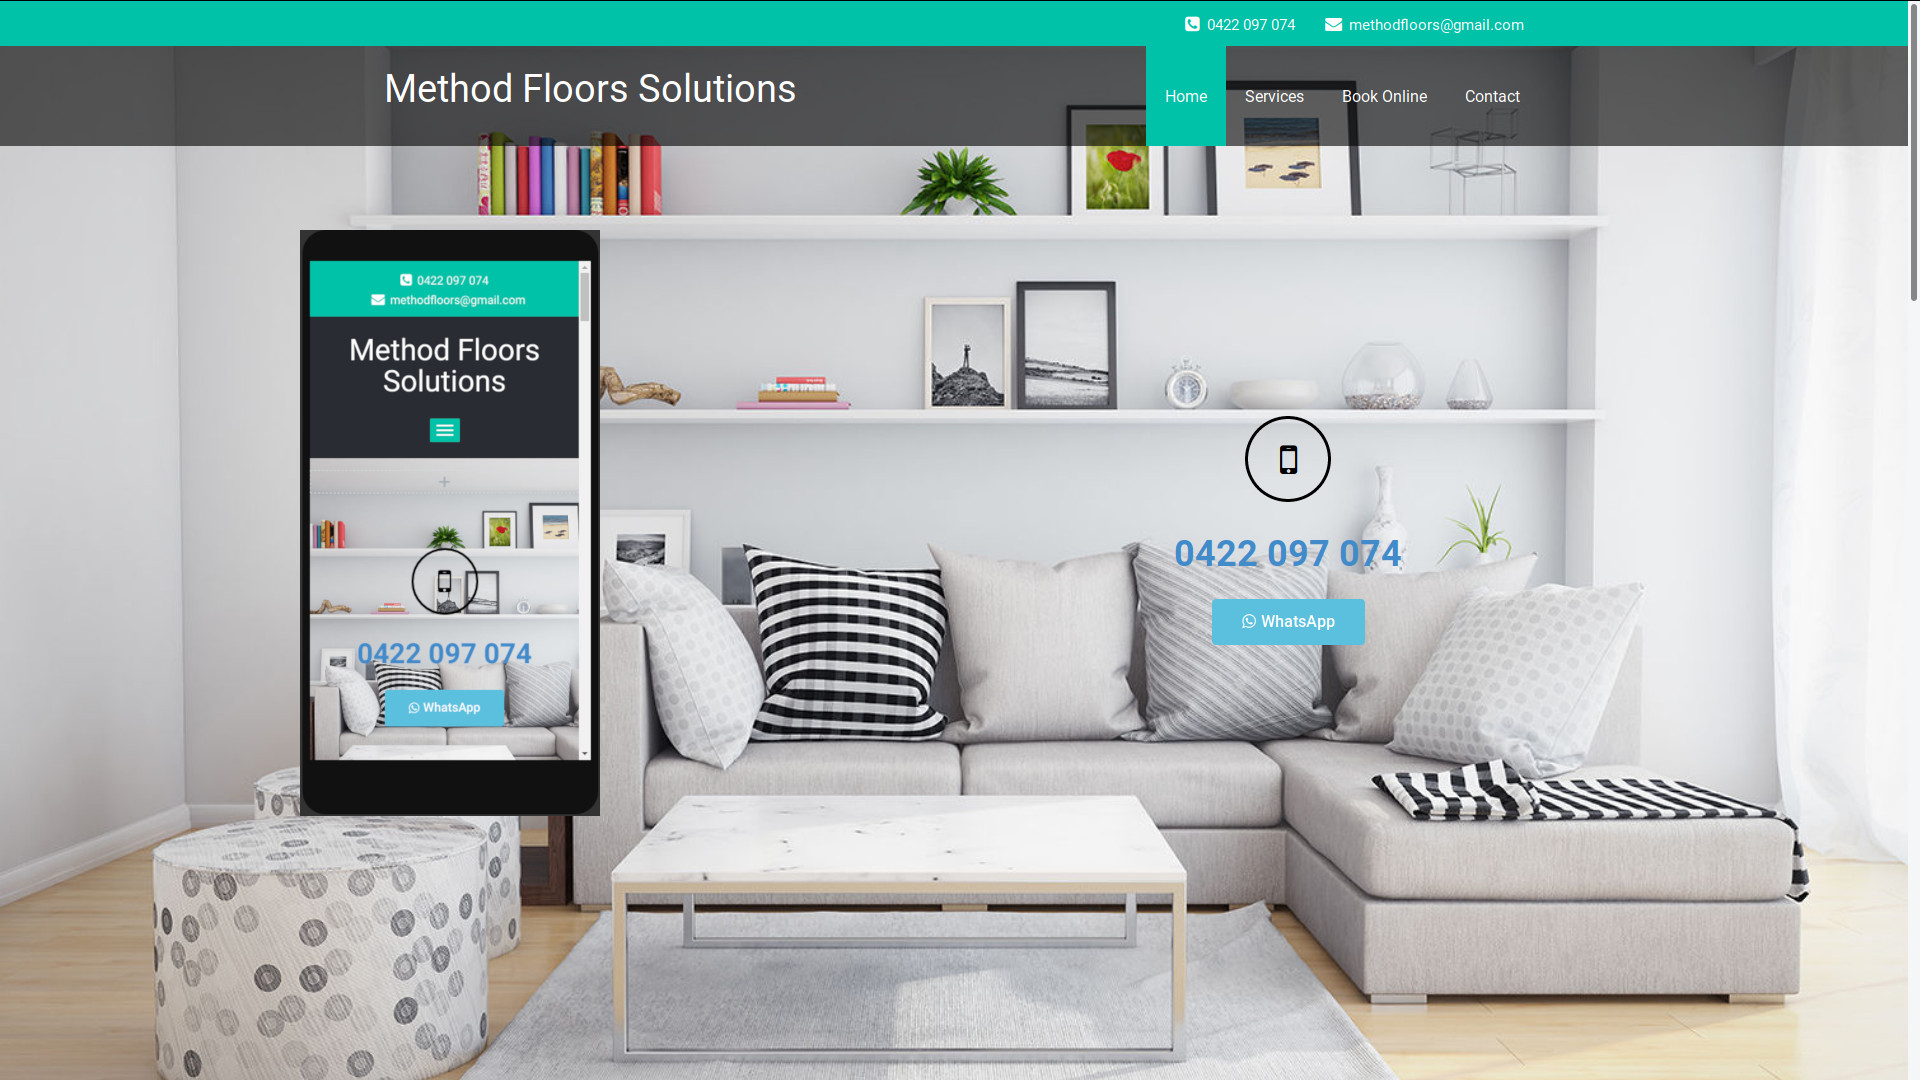 Method Floors Web Page